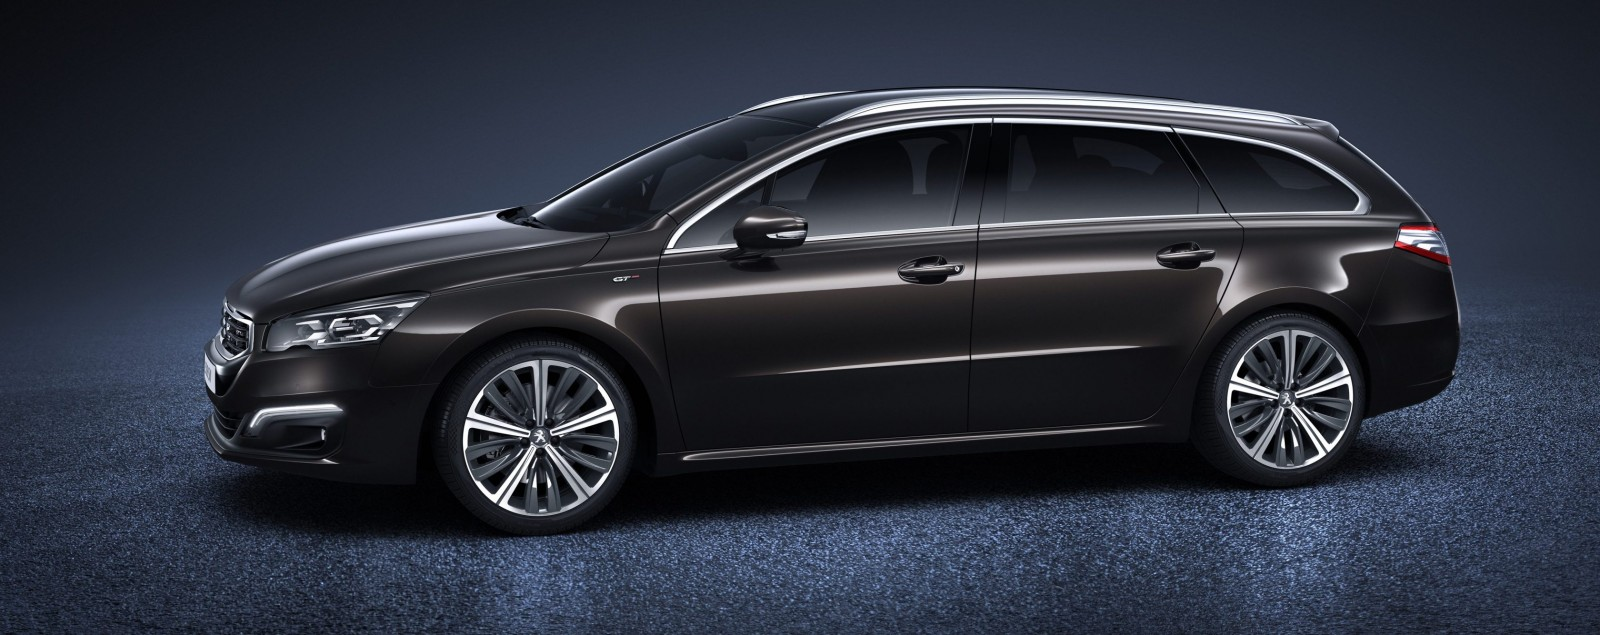 2015 Peugeot 508 Facelifted With New LED DRLs, Box-Design Beams and Tweaked Cabin Tech 23